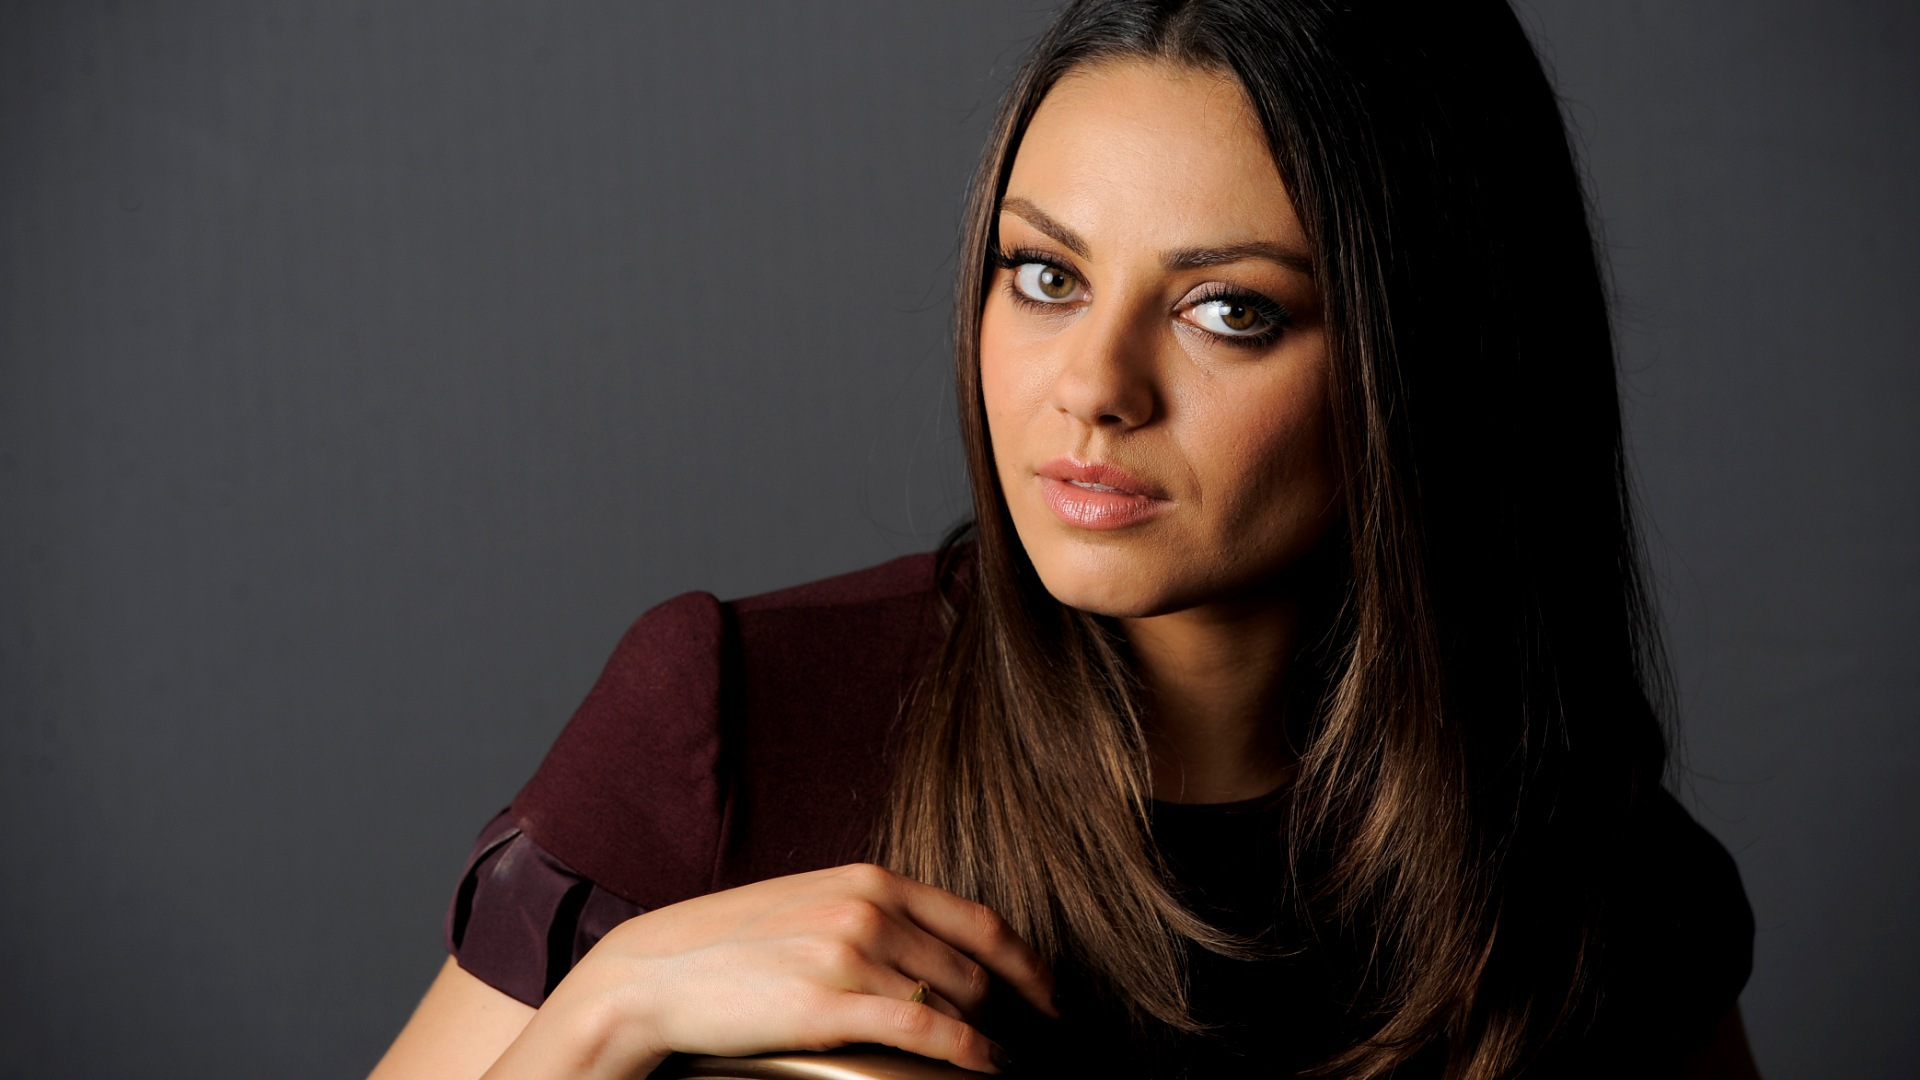 Mila kunis wallpapers images photos pictures backgrounds - Mila kunis 4k ...